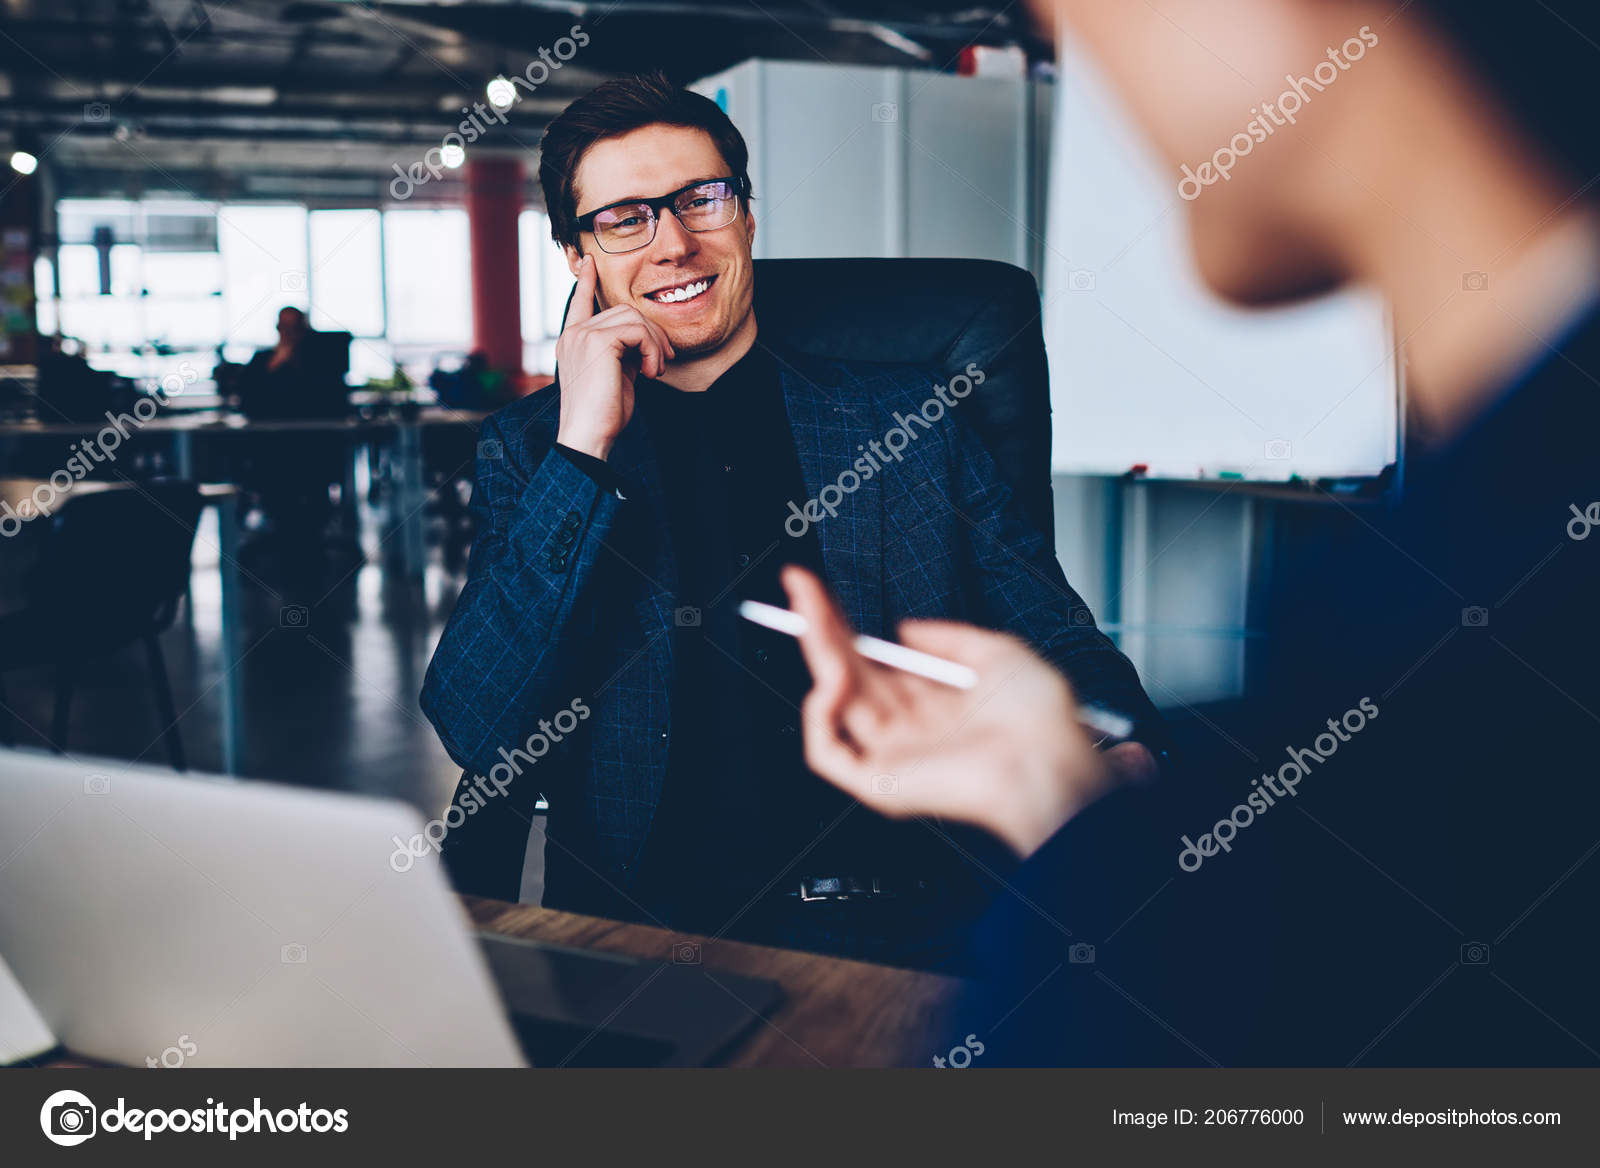 f23039e2c221 Cheerful male boss in formal wear having friendly talk with employee  satisfied with her job